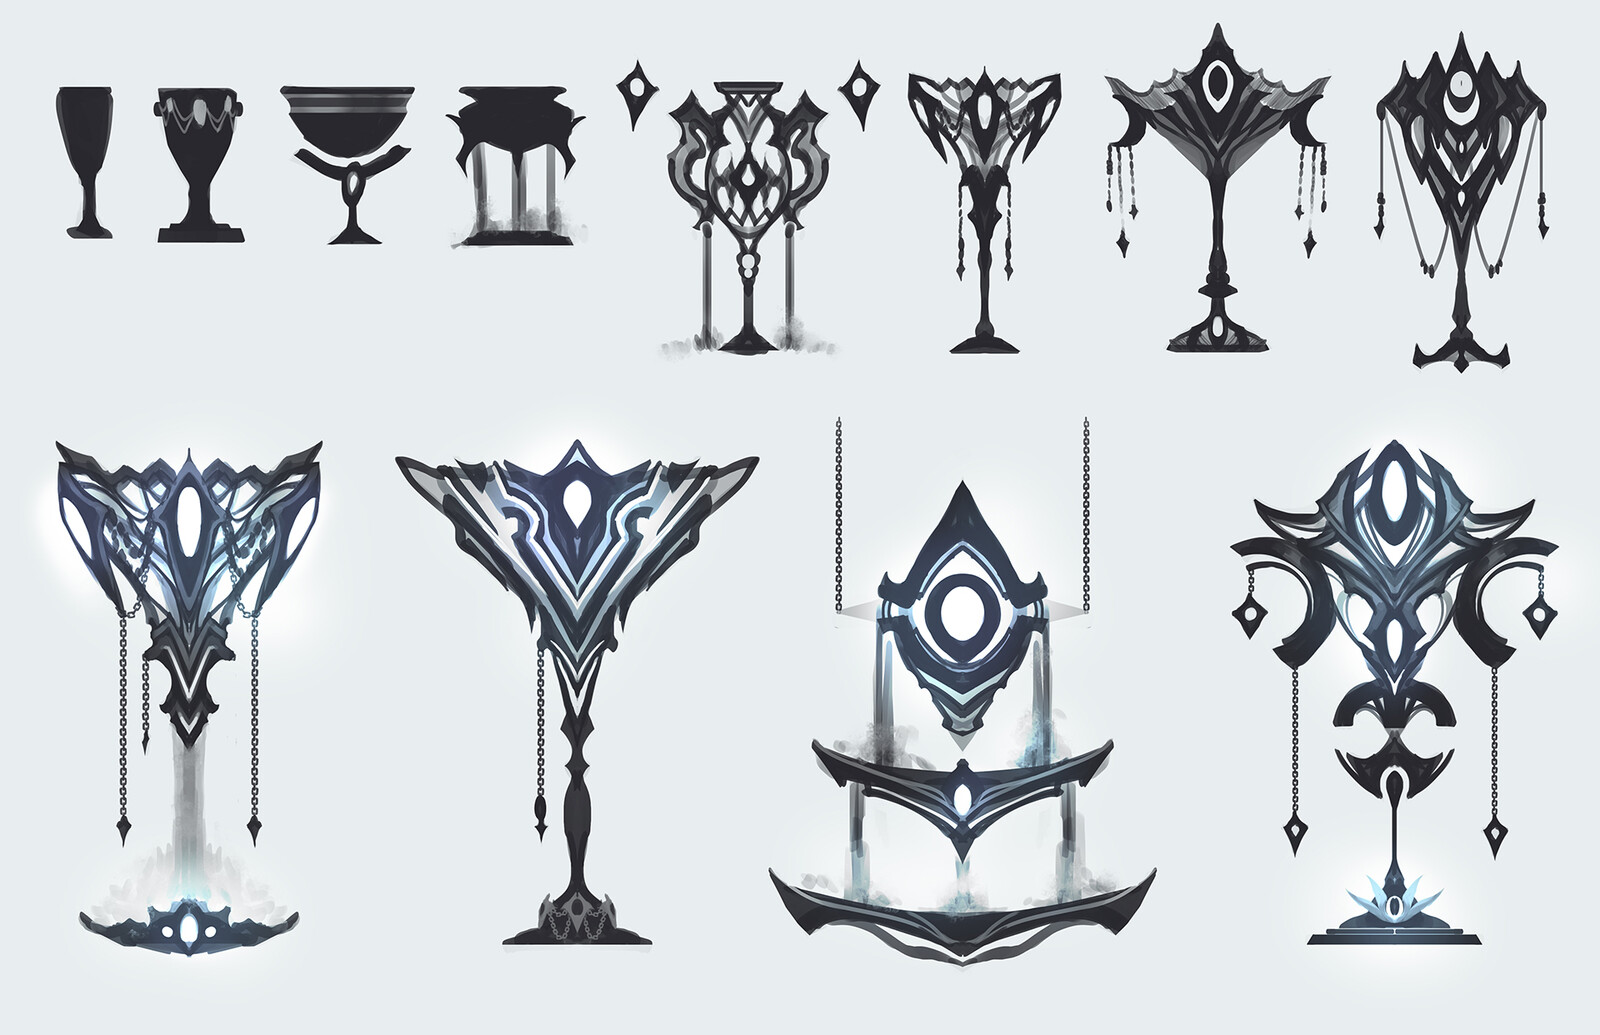 Sketch sheet for the Holy Grail. Was pretty happy with my first themed sketch of the chalice, so I knew which direction I was going to take it in very early on. I liked the idea of a floating chalice and a sieve so I explored those ideas too.